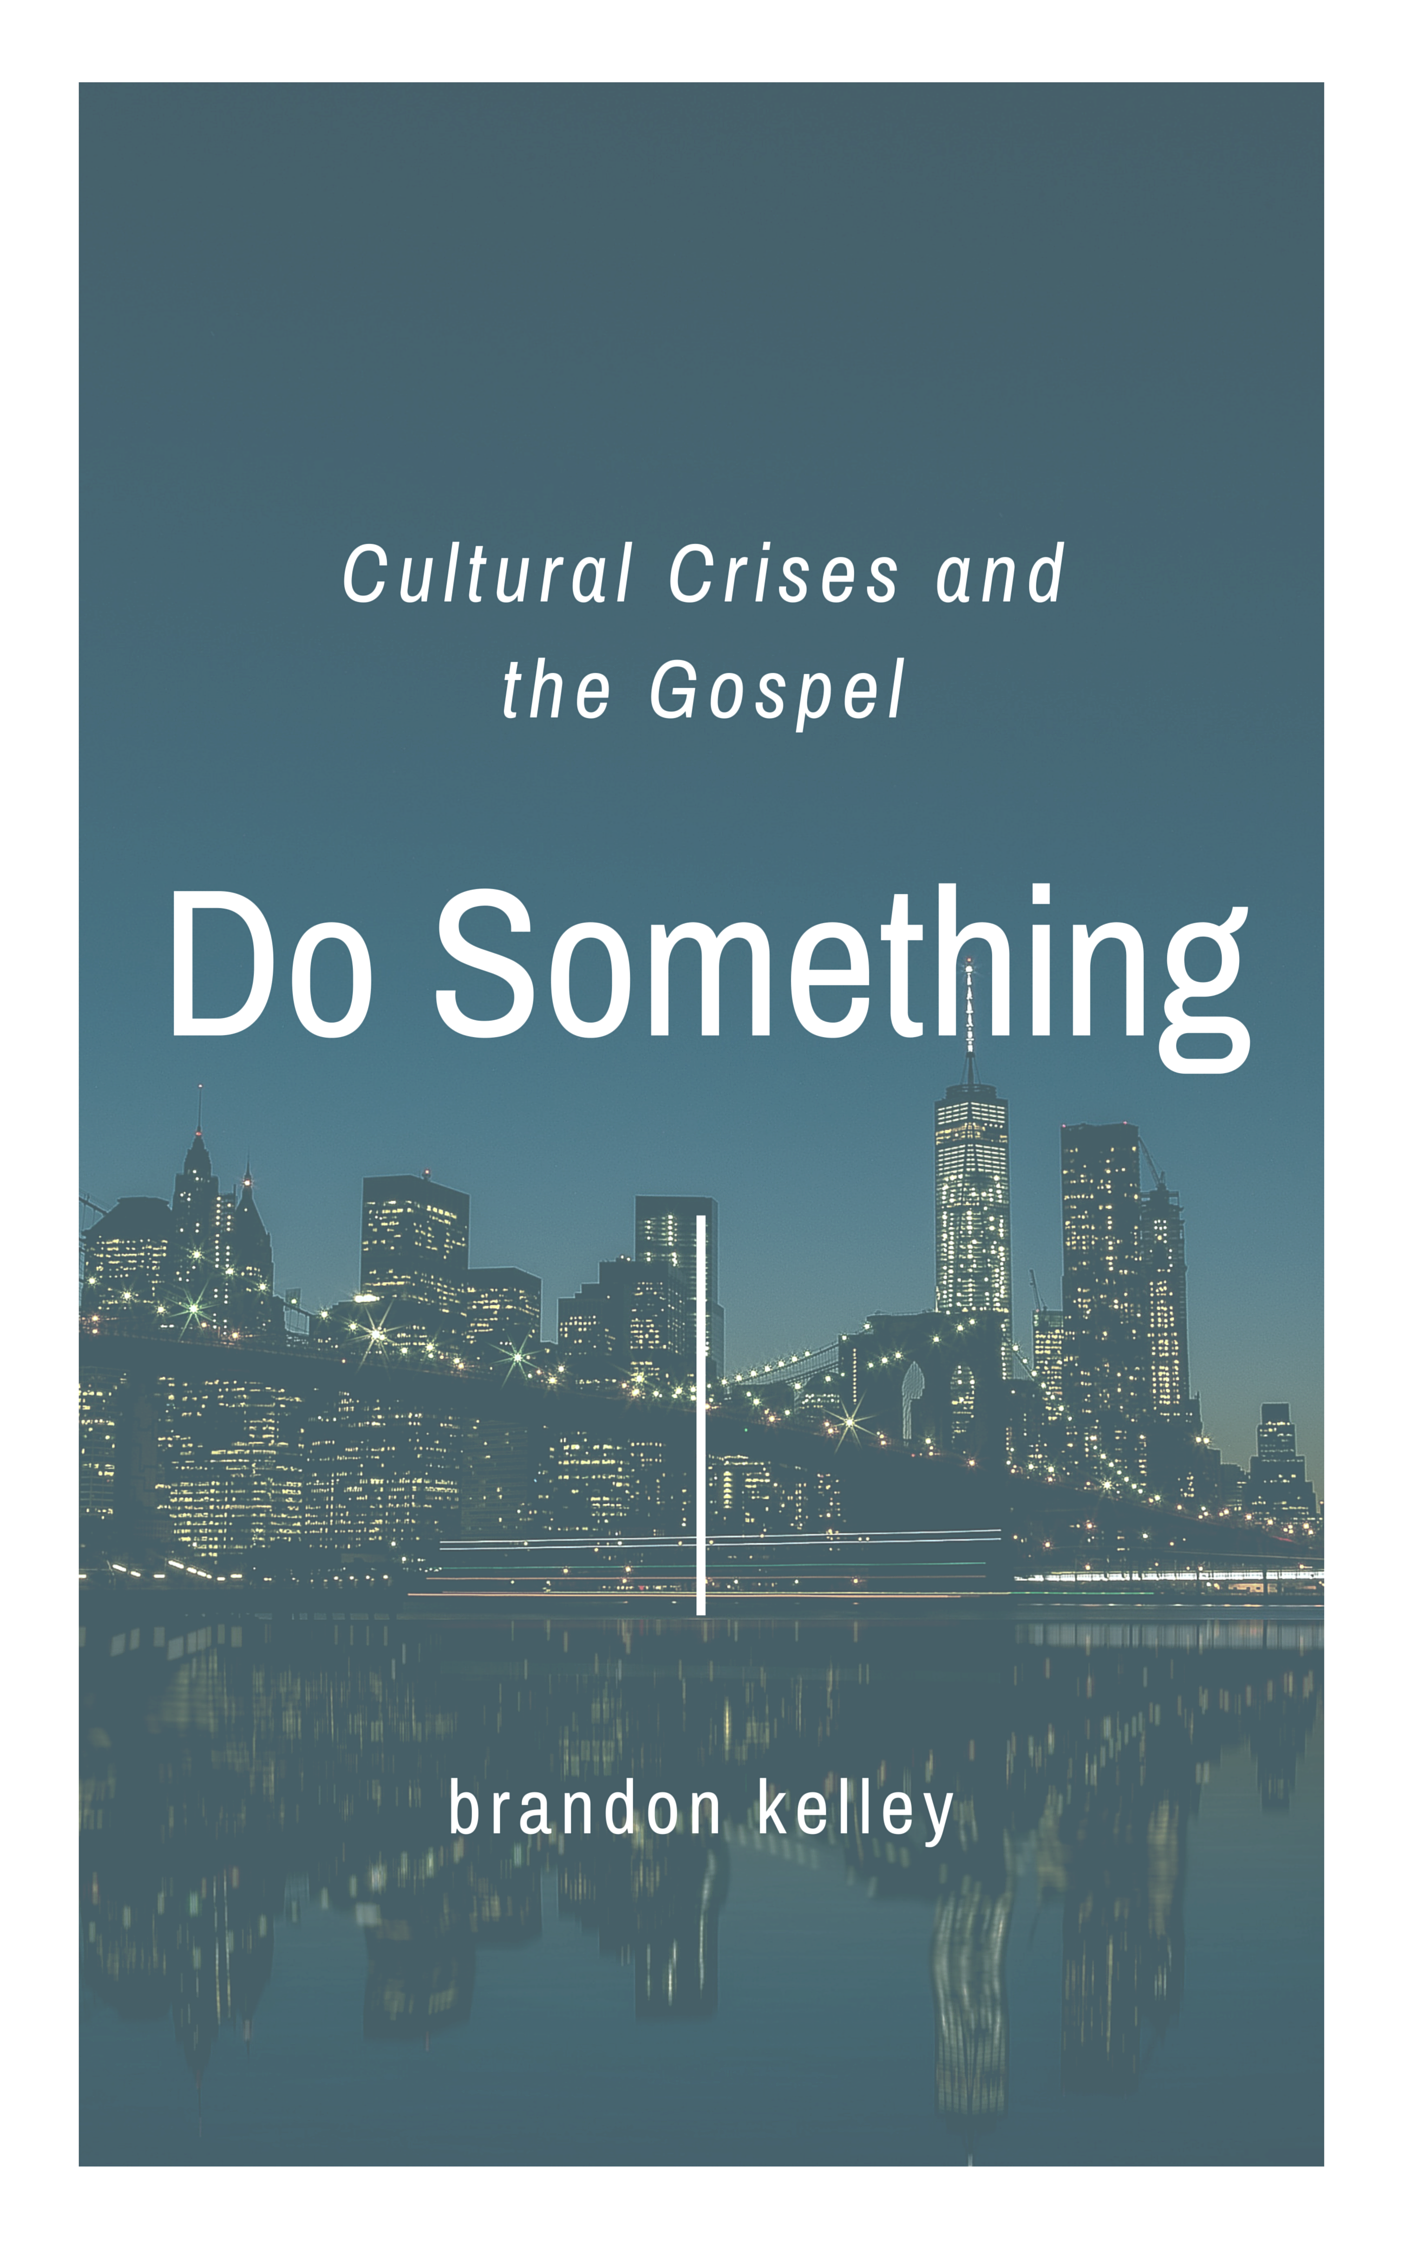 Do Something: Cultural Crises and the Gospel